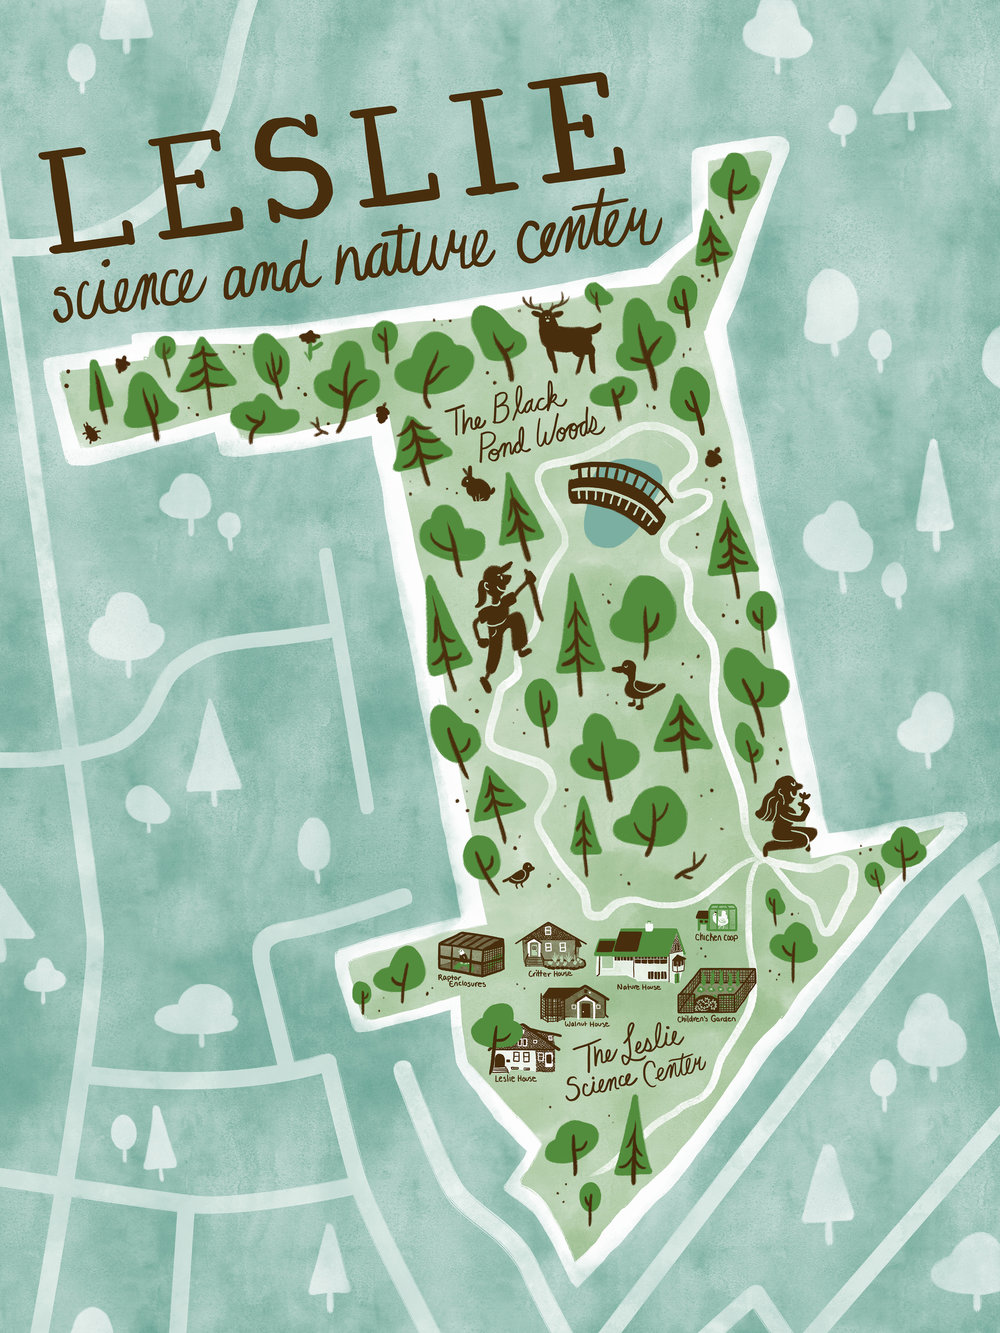 Map of the Leslie Science and Nature Center